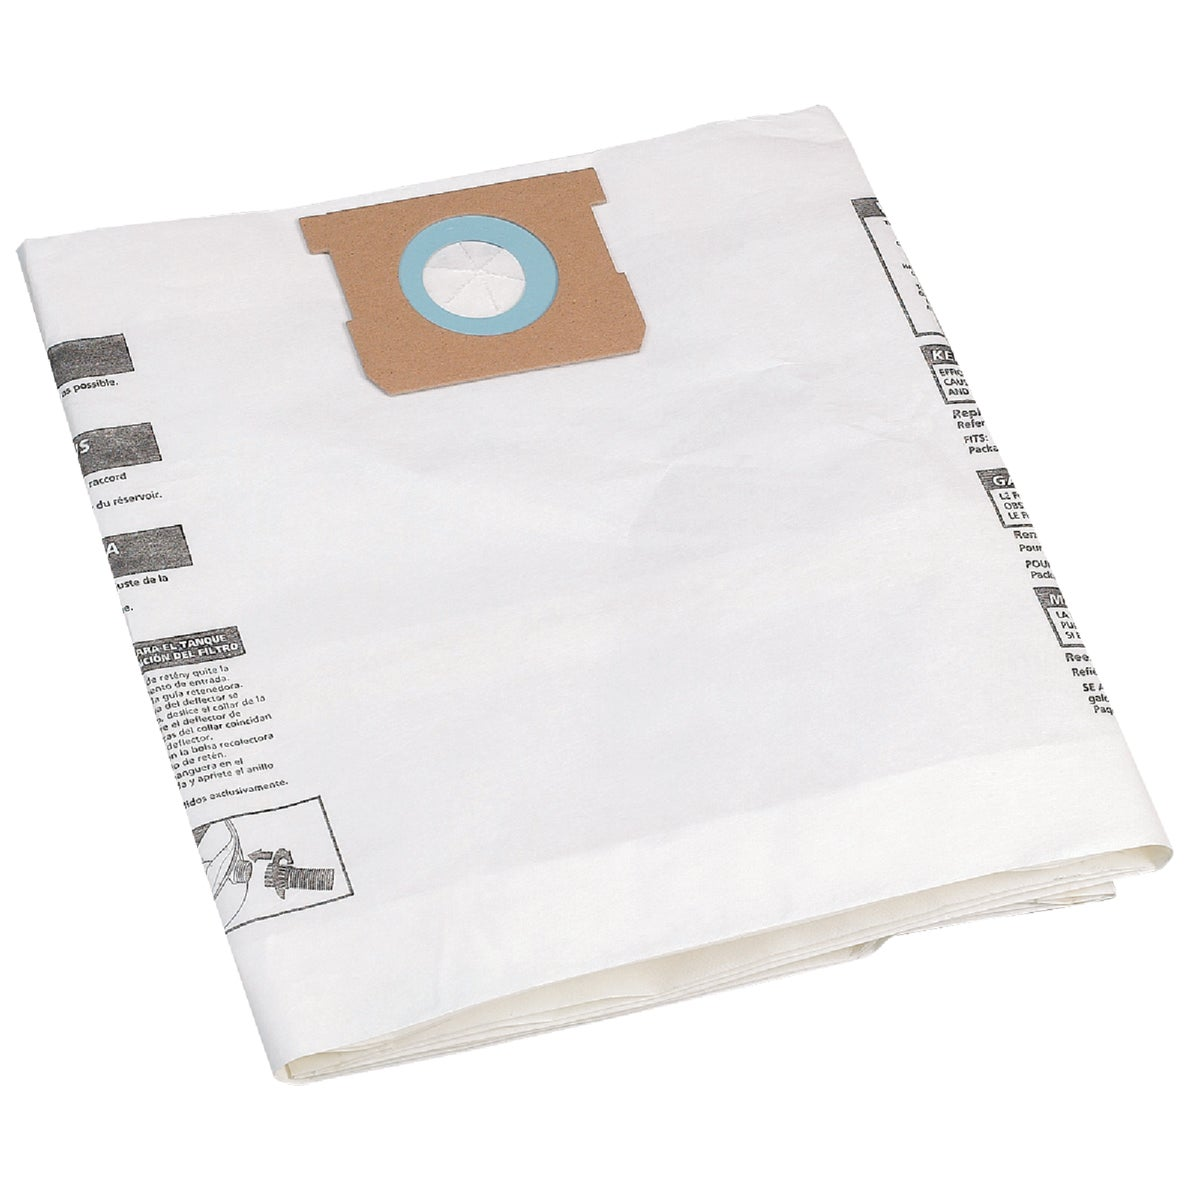 MED PAPER COLLECTION BAG - 9066200 by Shop Vac Corp